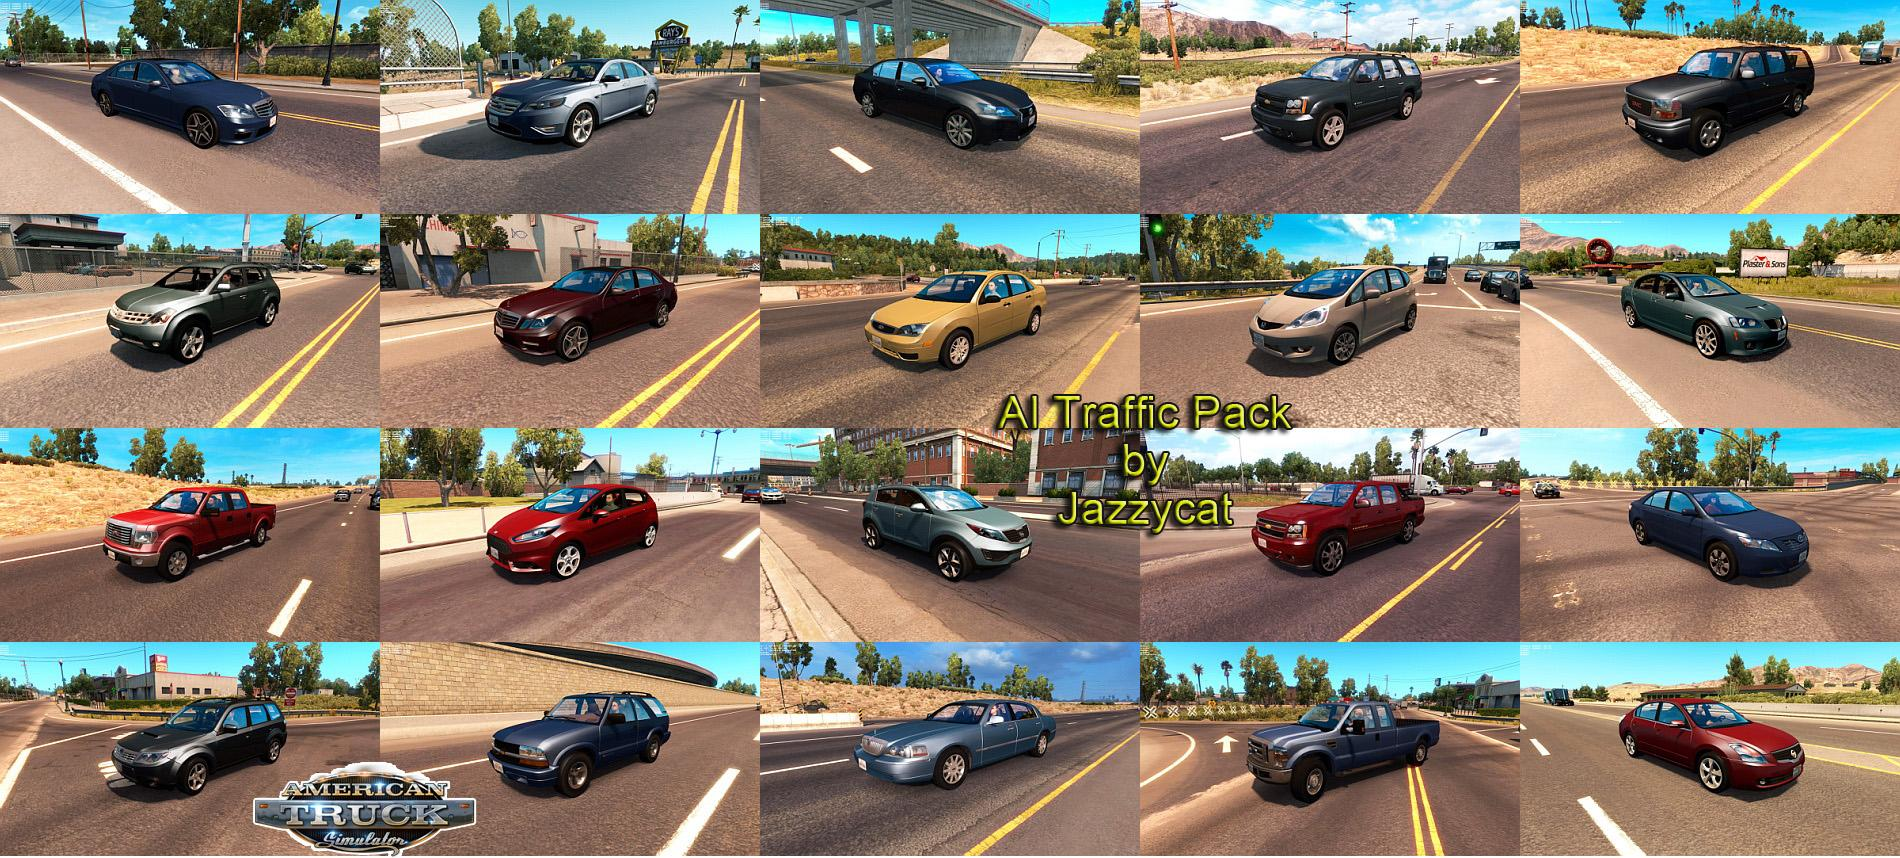 AI Traffic Pack by Jazzycat v1 5 • ATS mods | American truck